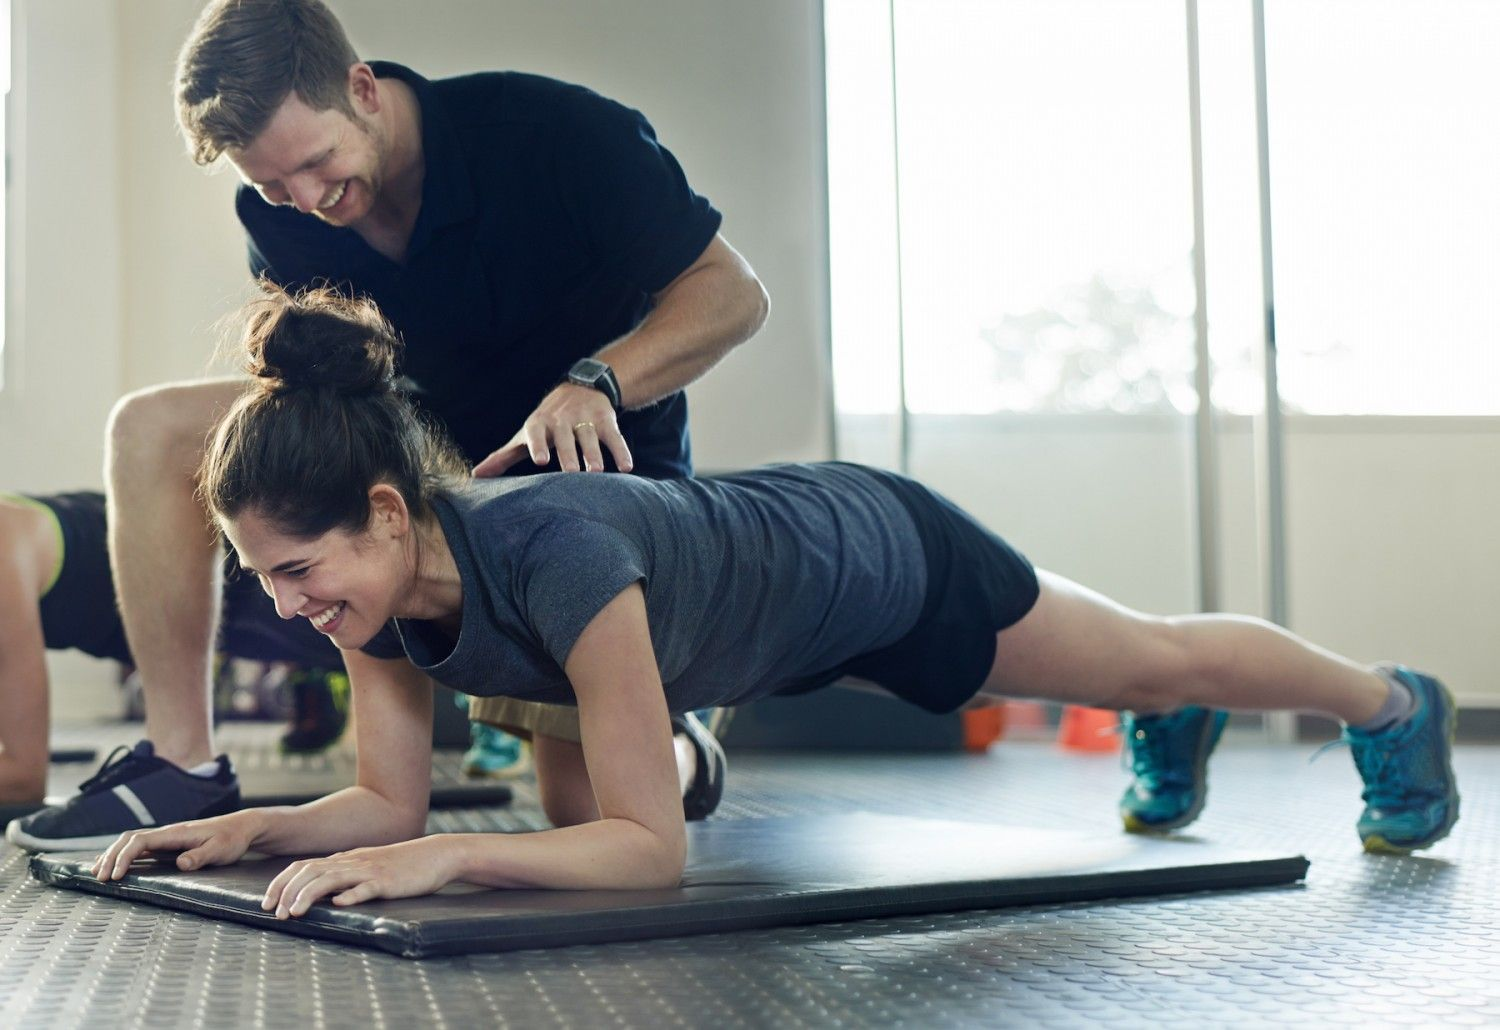 How To Get The Most Out Of Personal Training